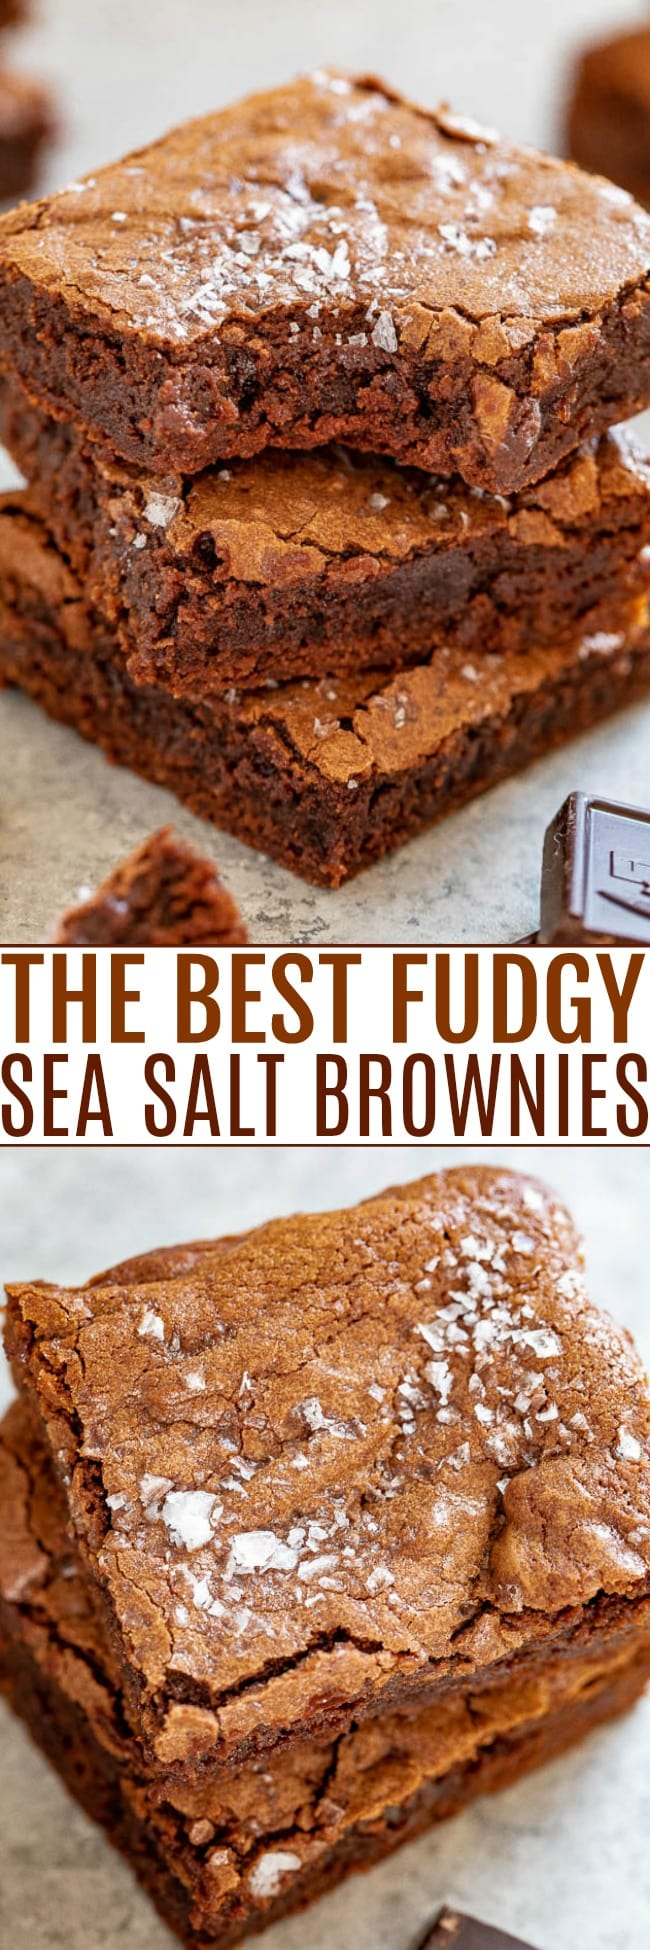 The Best Fudgy Sea Salt Brownies - Only 7 ingredients in these EASY, one-bowl, no-mixer brownies that are MY NEW FAVORITE BROWNIES!! Super fudgy, slightly chewy edges, crackly top, and ultra dark chocolate paired with sea salt for the HOLY GRAIL of brownies!!